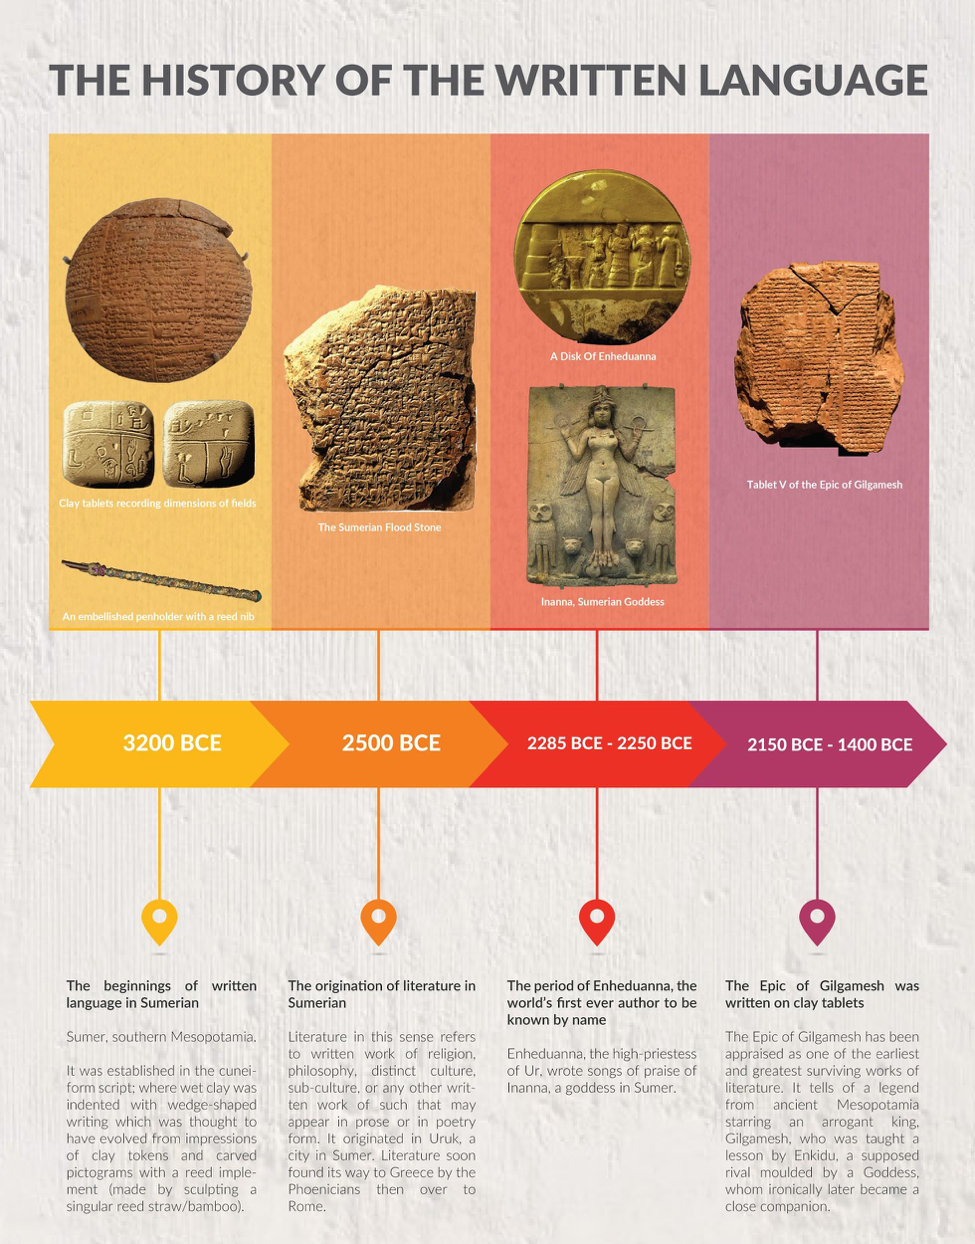 A brief history of the written language and how it has progressed along the years.